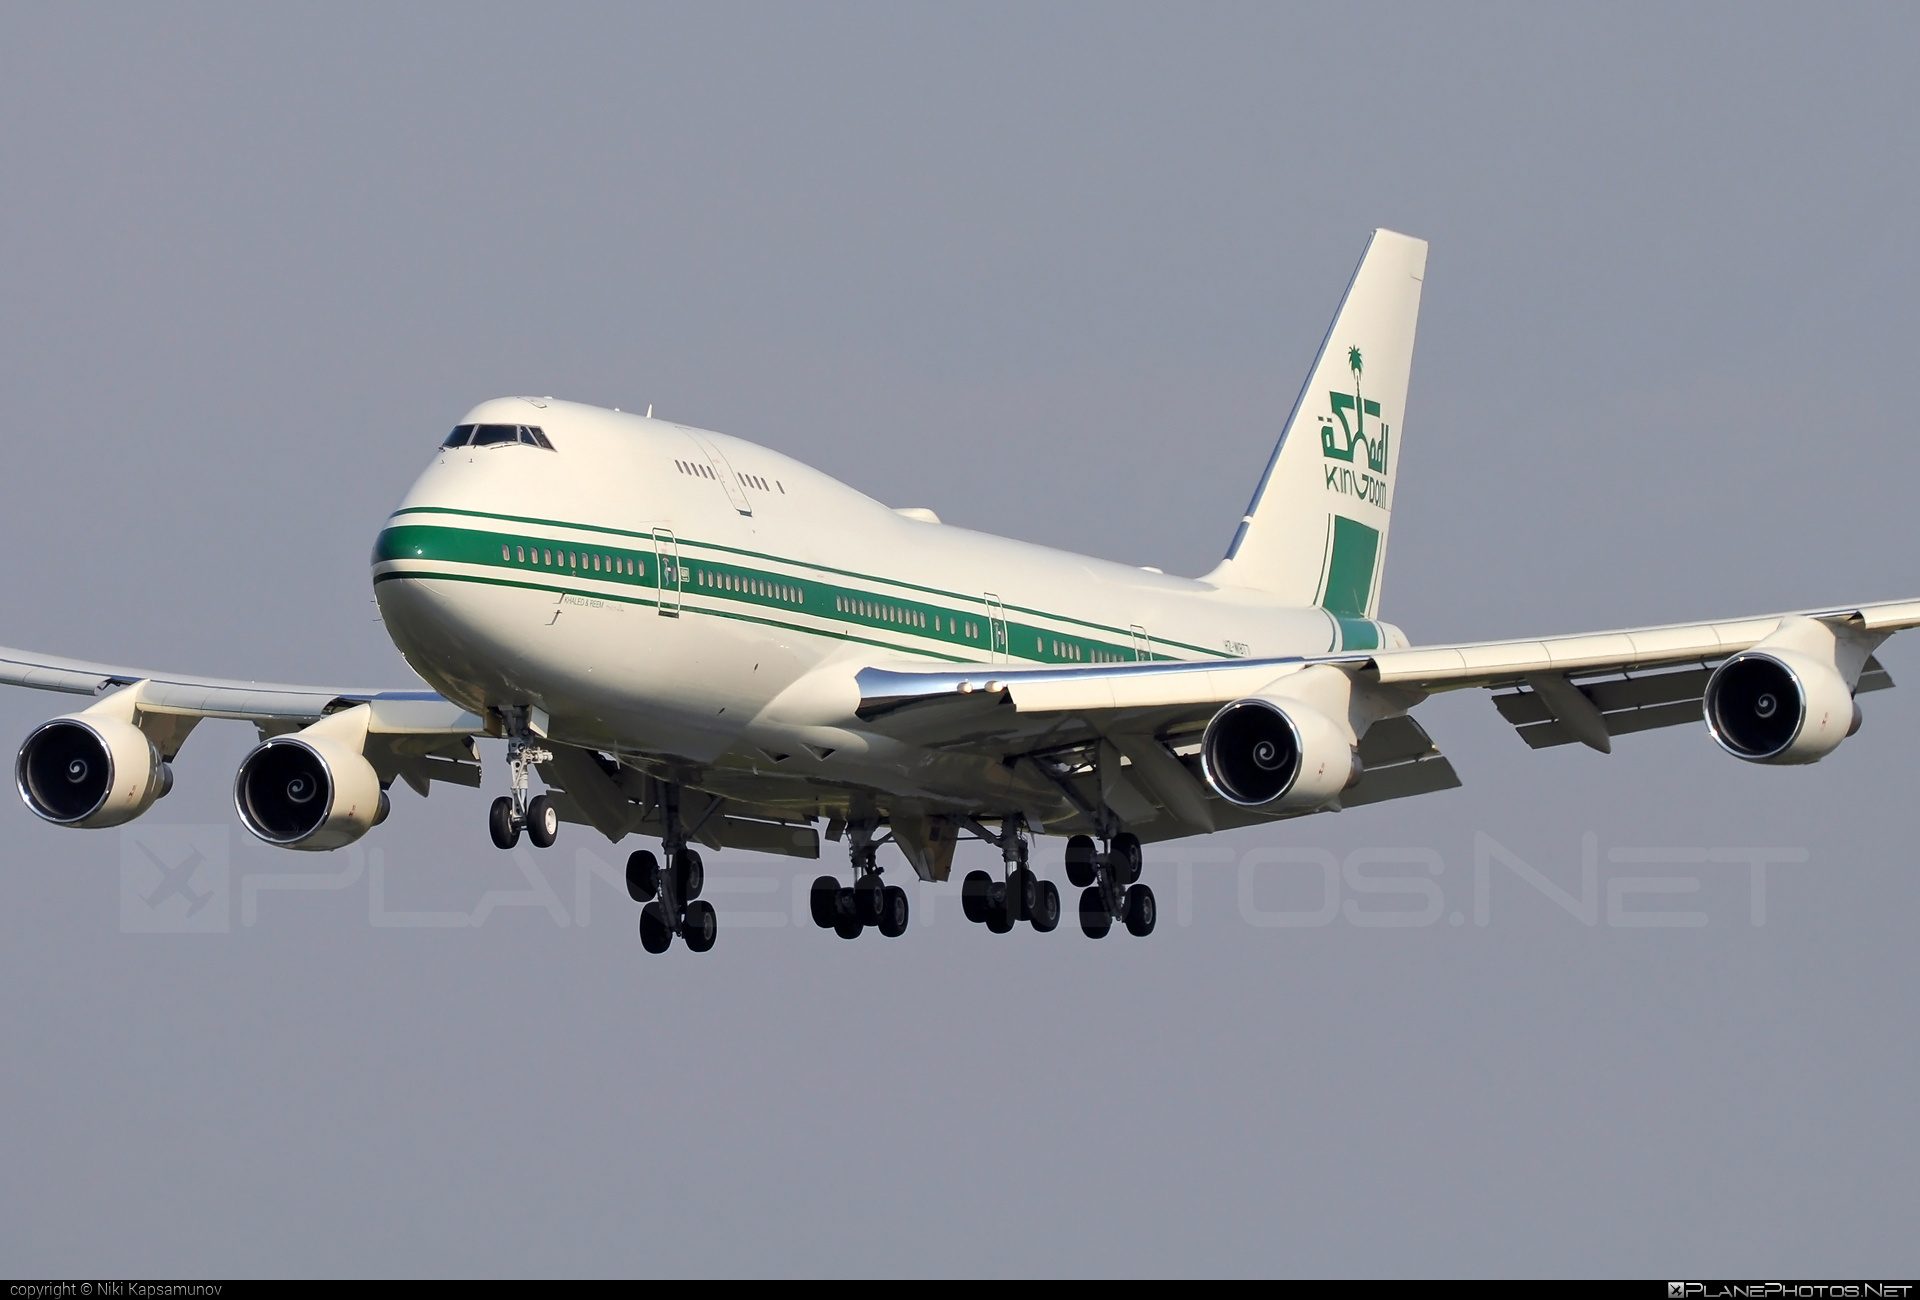 Boeing 747-400 - HZ-WBT7 operated by Kingdom Holding Company #b747 #boeing #boeing747 #jumbo